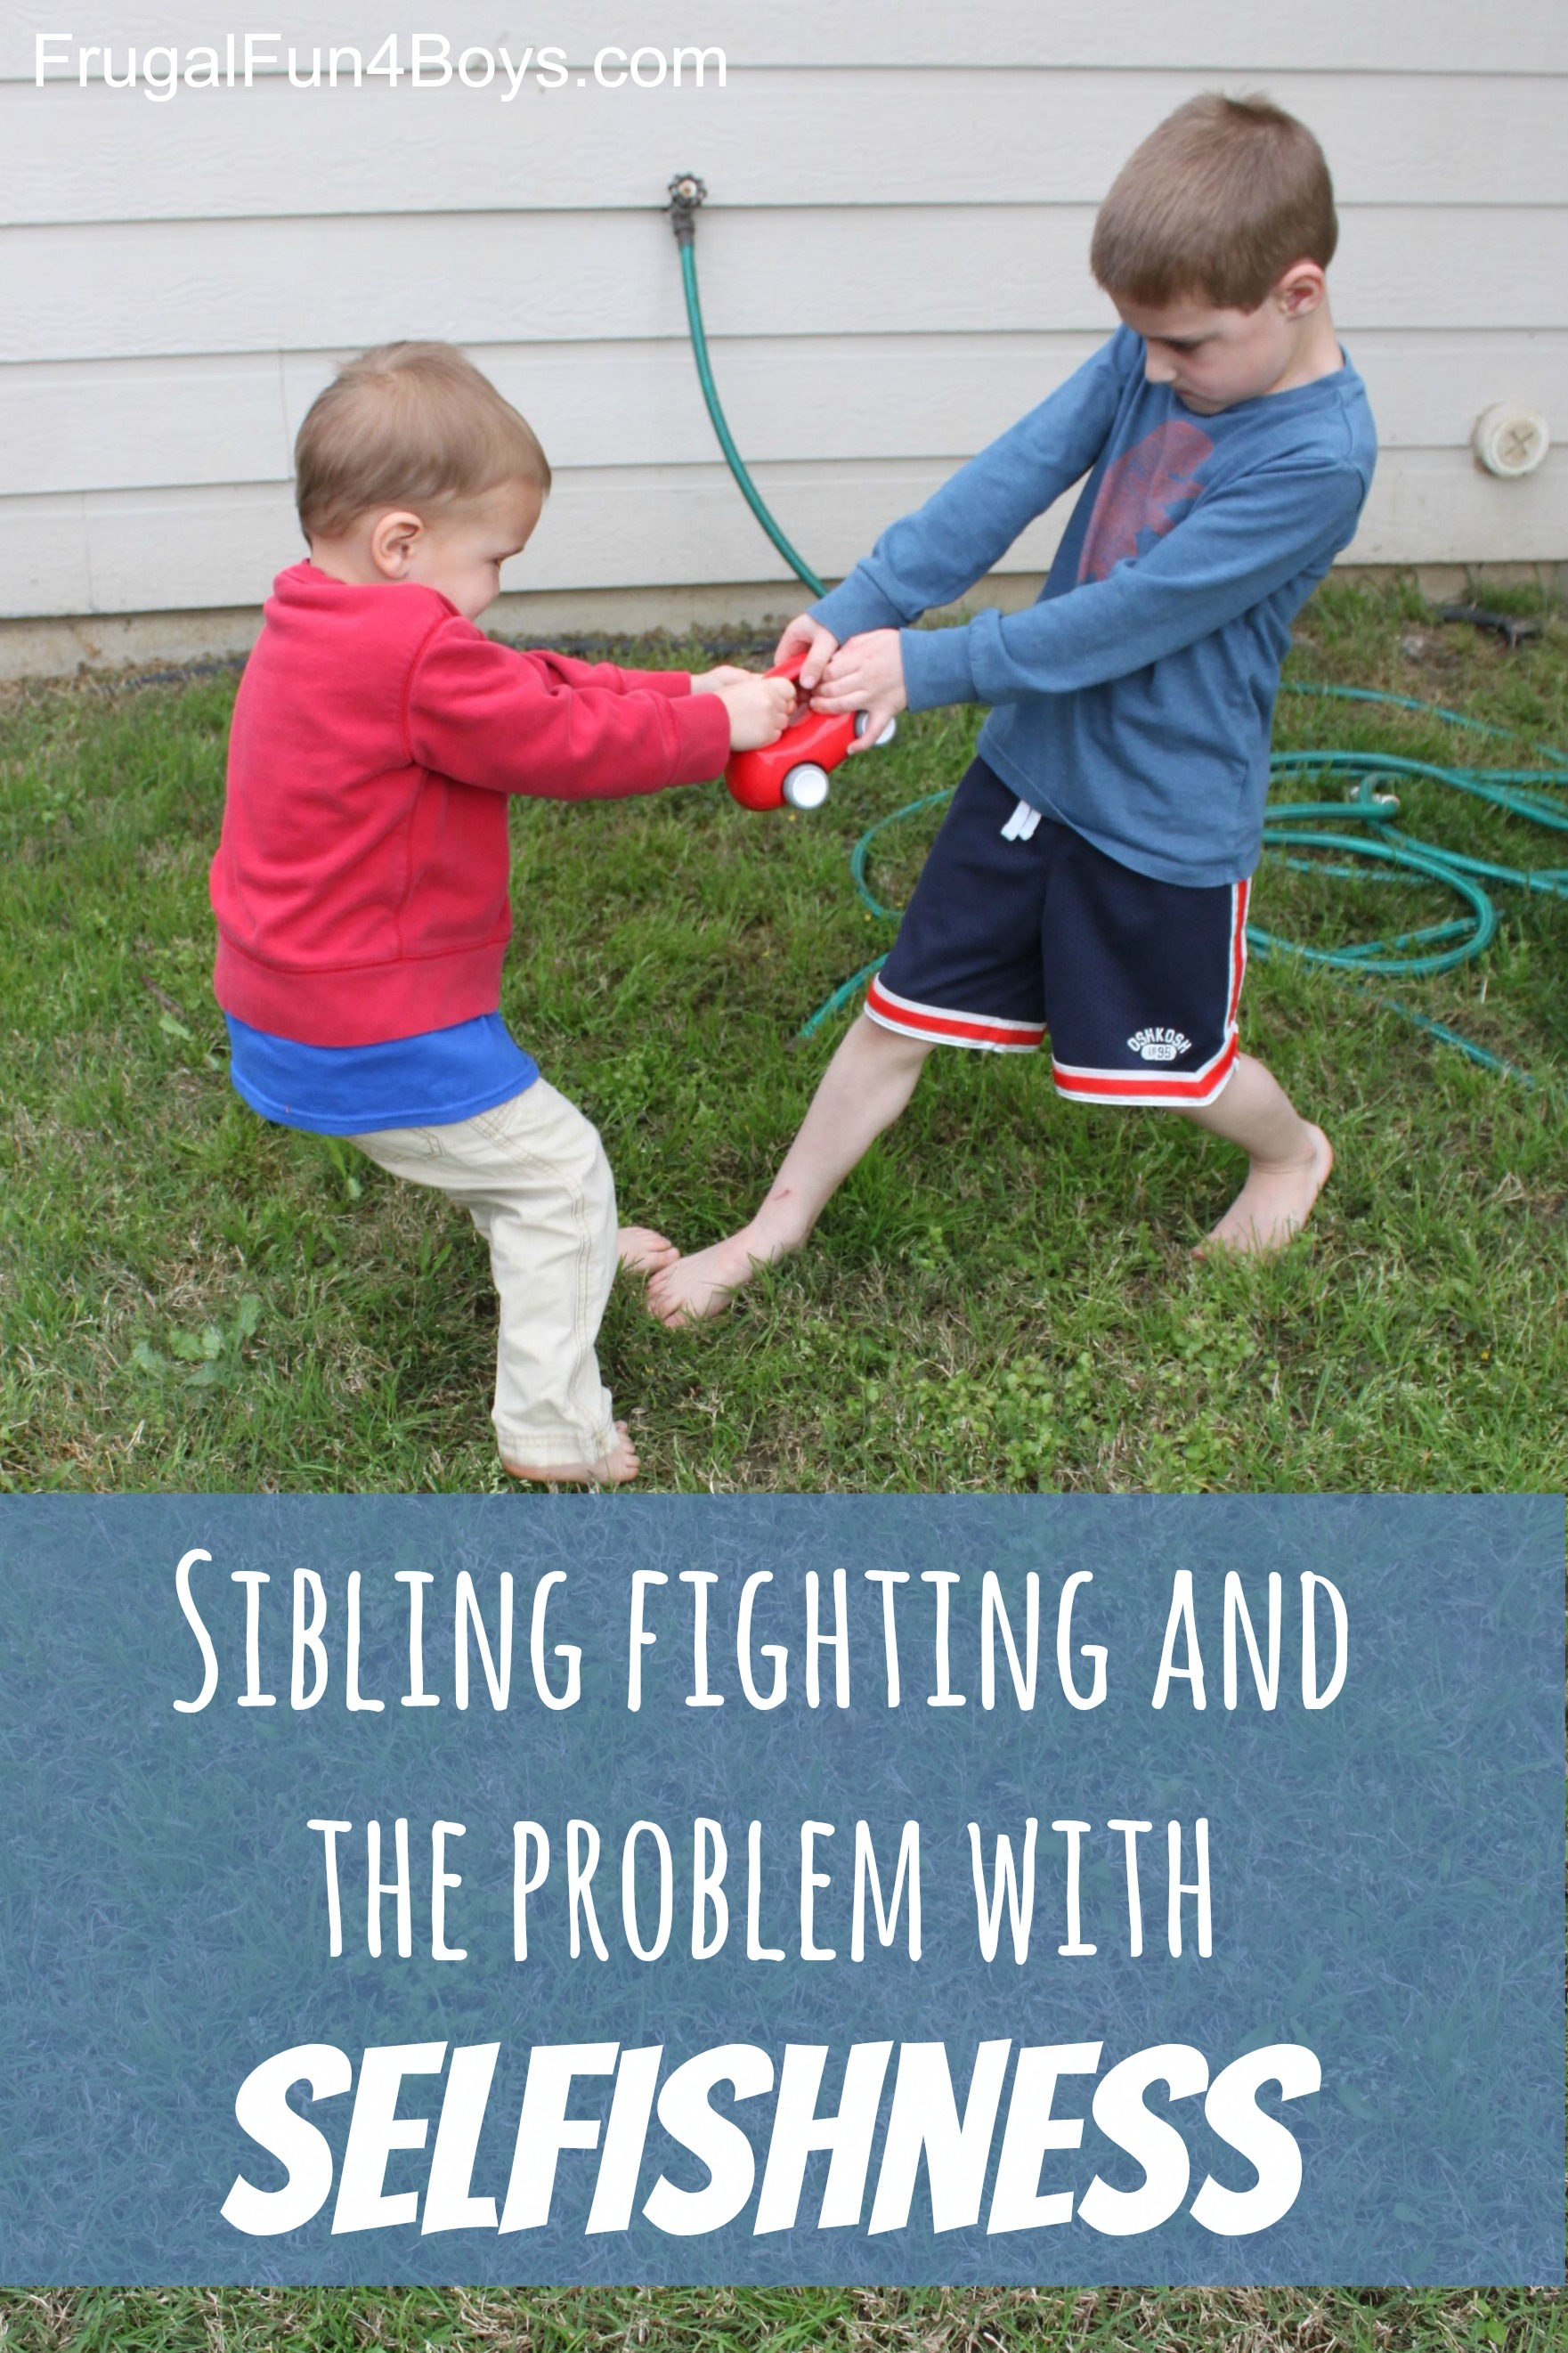 Sibling Fighting and the Problem of Selfishness